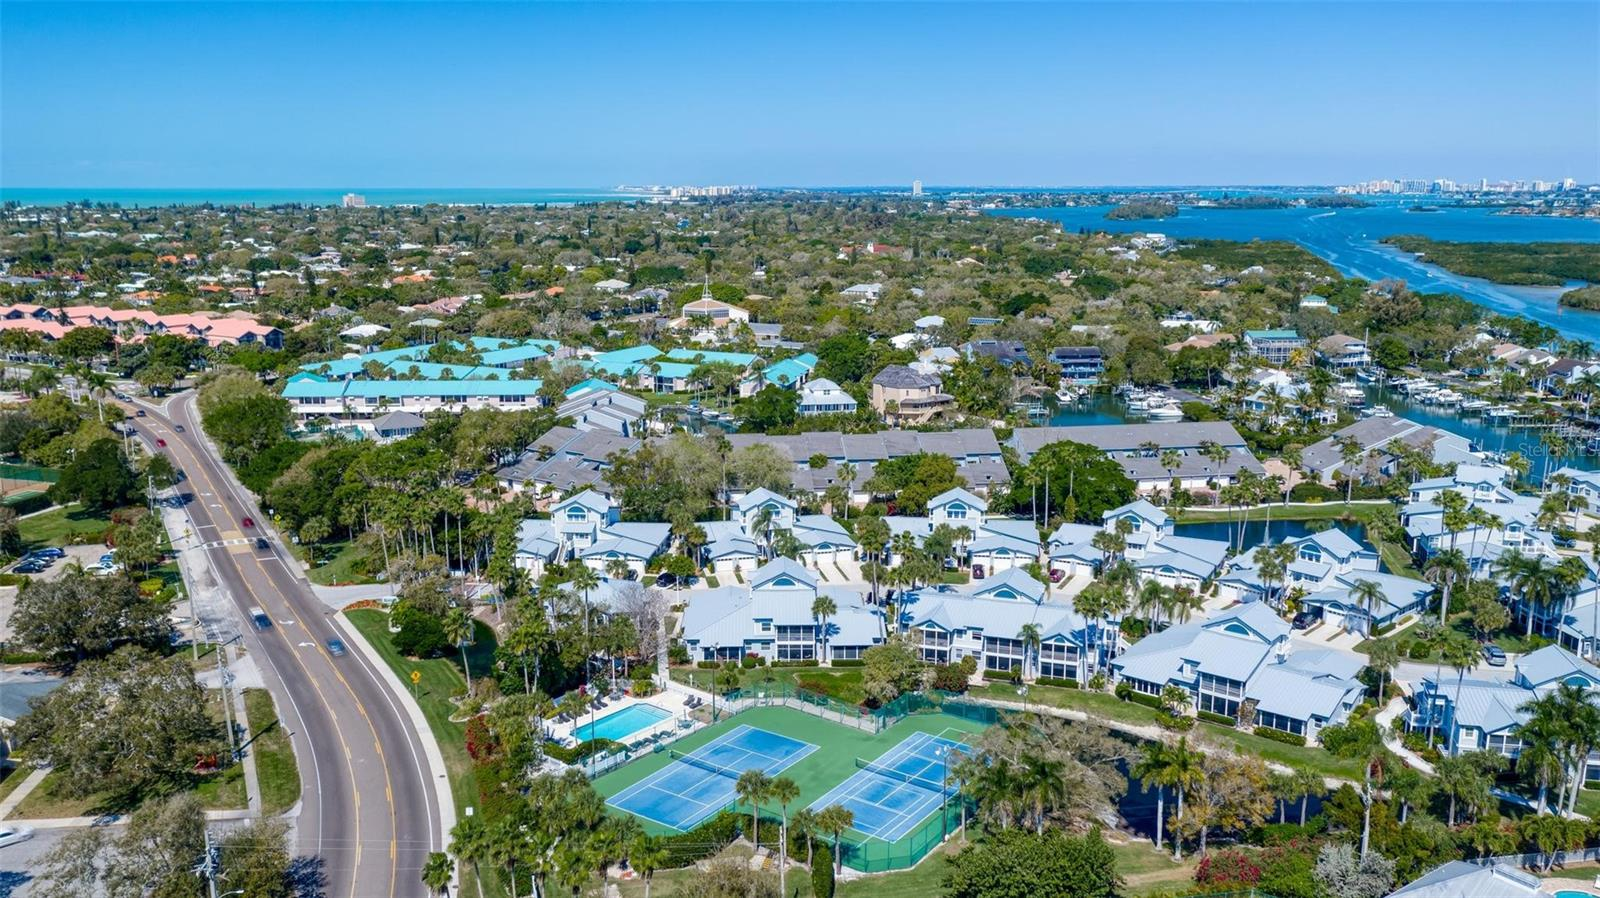 Condo for sale at 1335 Siesta Bayside Dr #1335-C, Sarasota, FL 34242 - MLS Number is A4499295